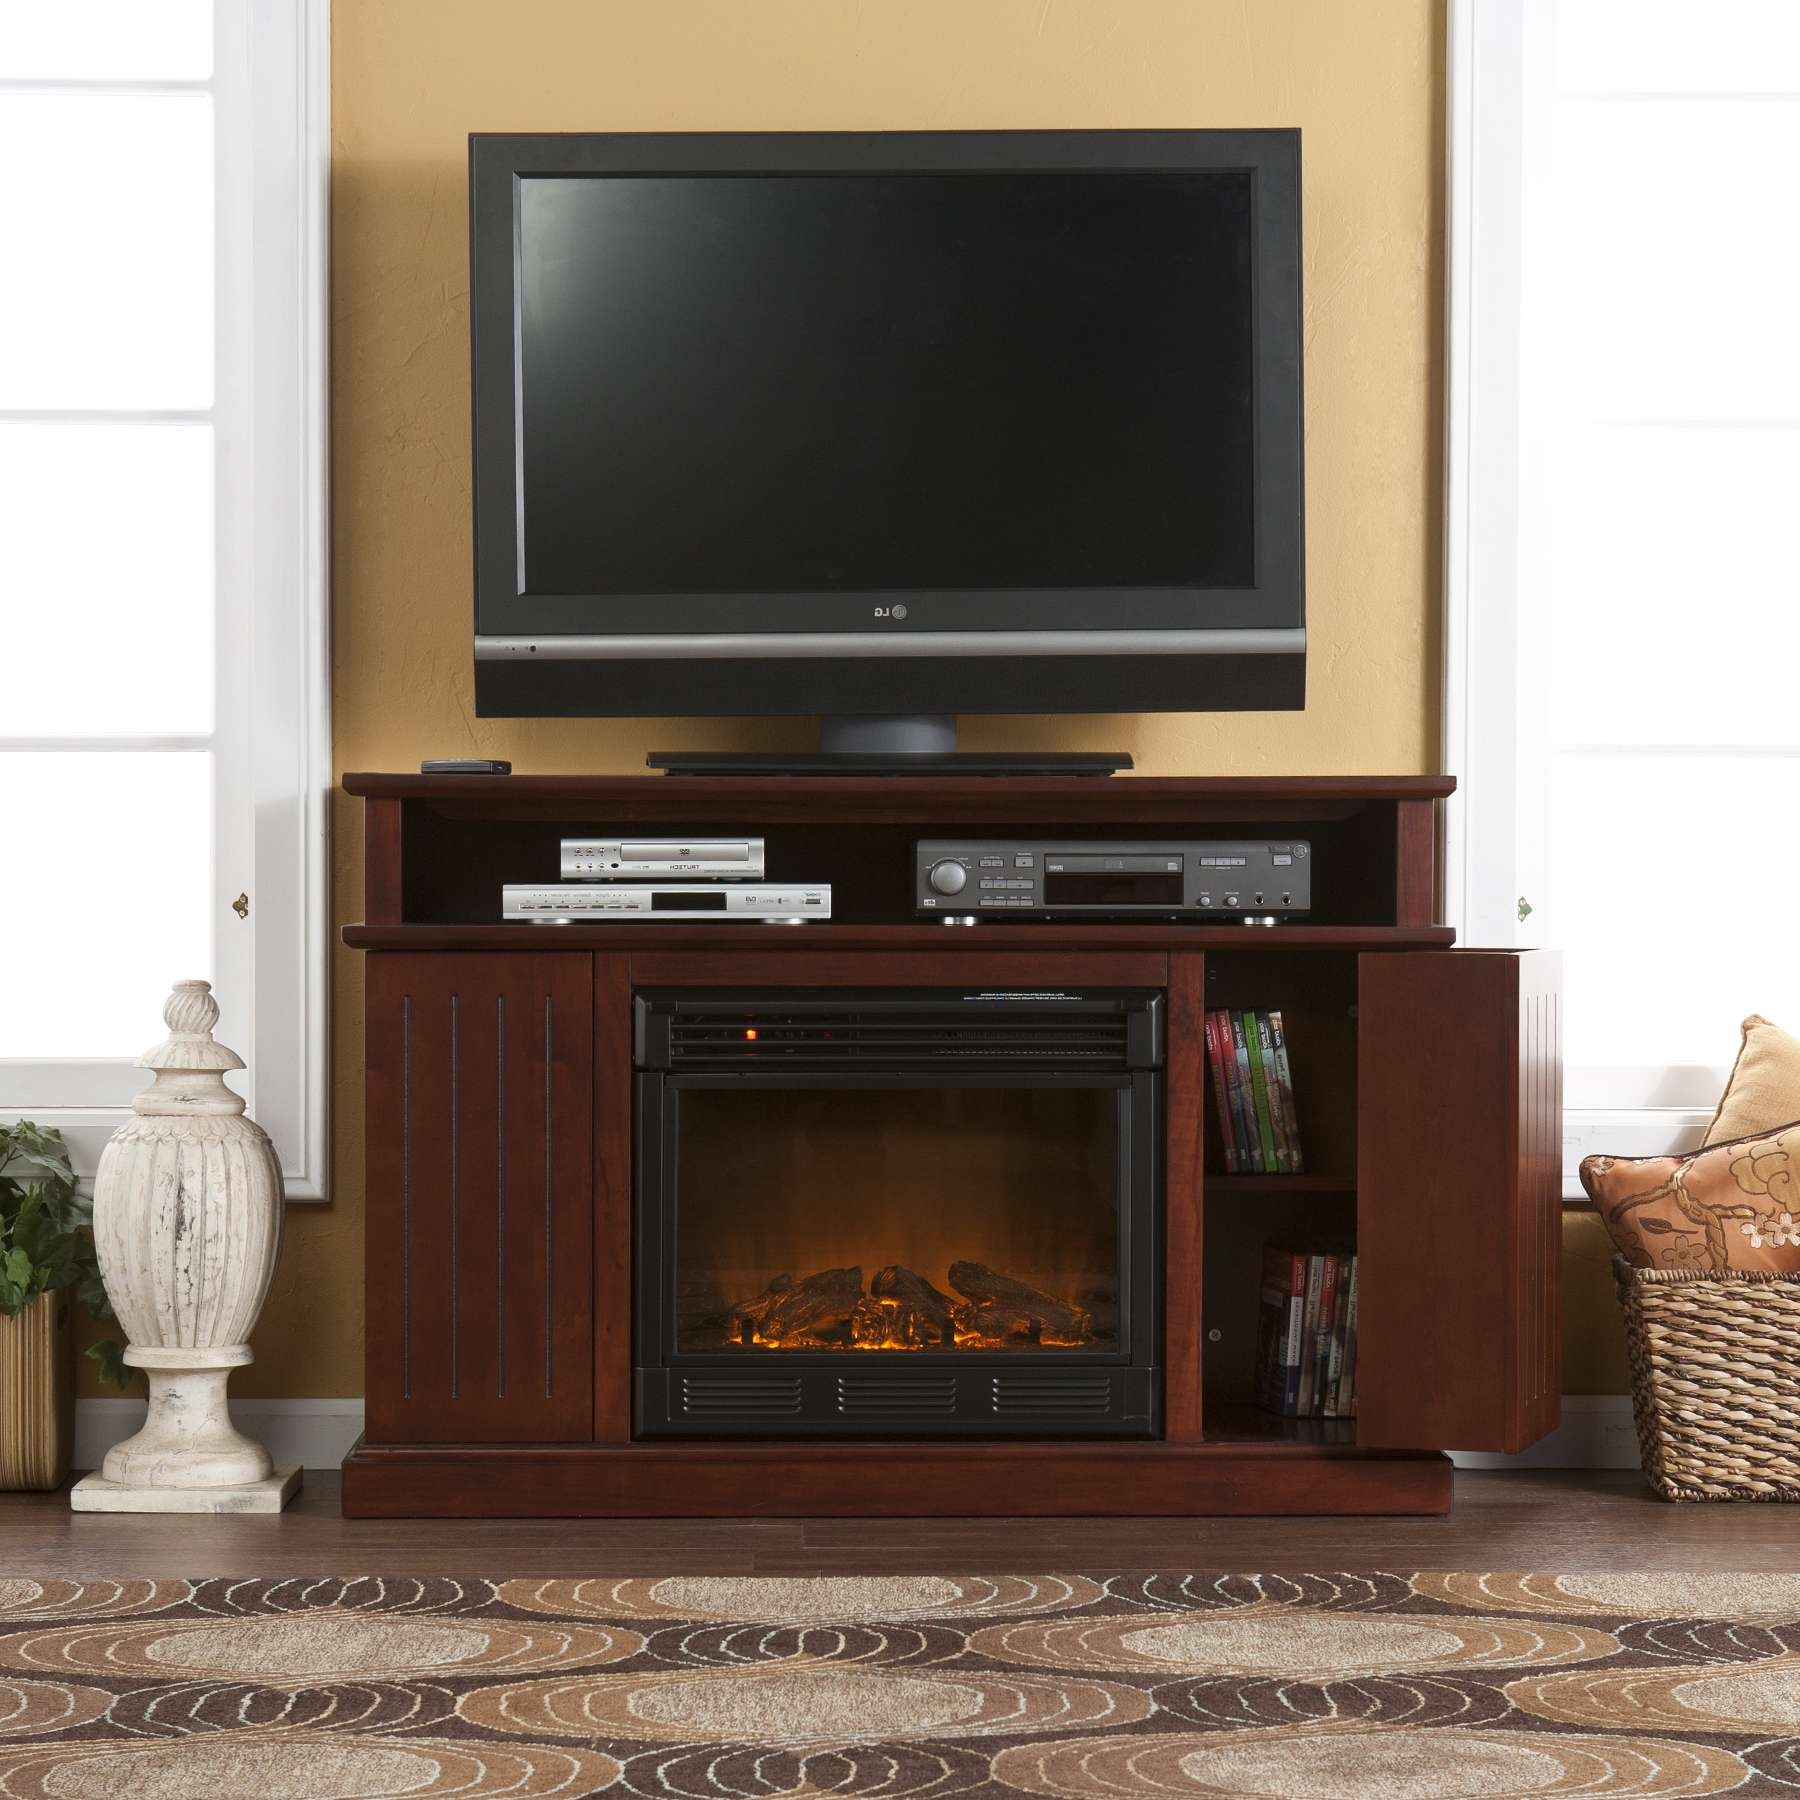 Cherry Wood Tv Stand With Electric Fireplace And Cd Storage For Cherry Wood Tv Stands (View 15 of 15)